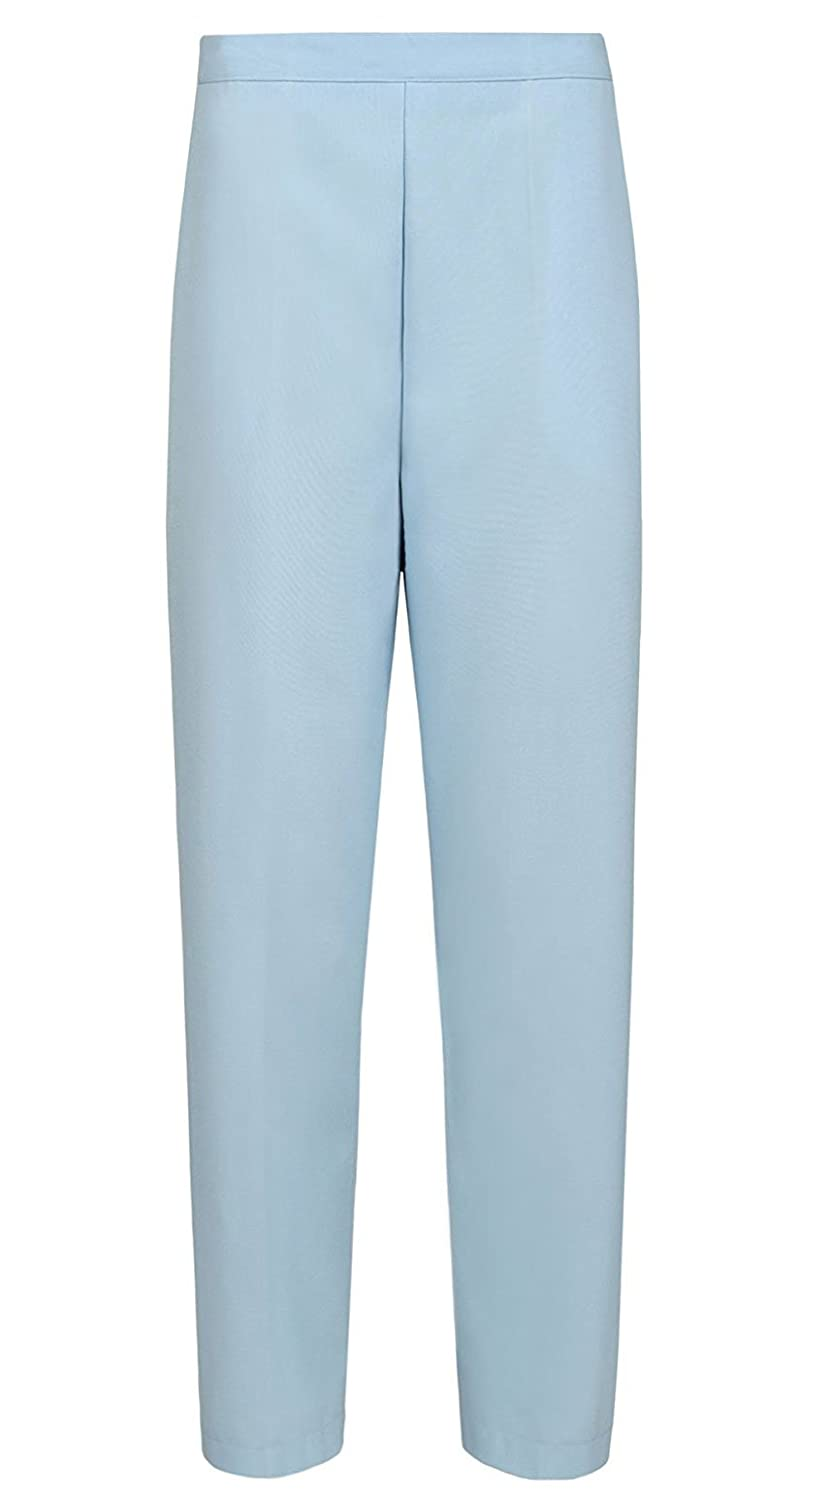 FashionCity Womens Elasticated Waistband Office Trouser TRS003